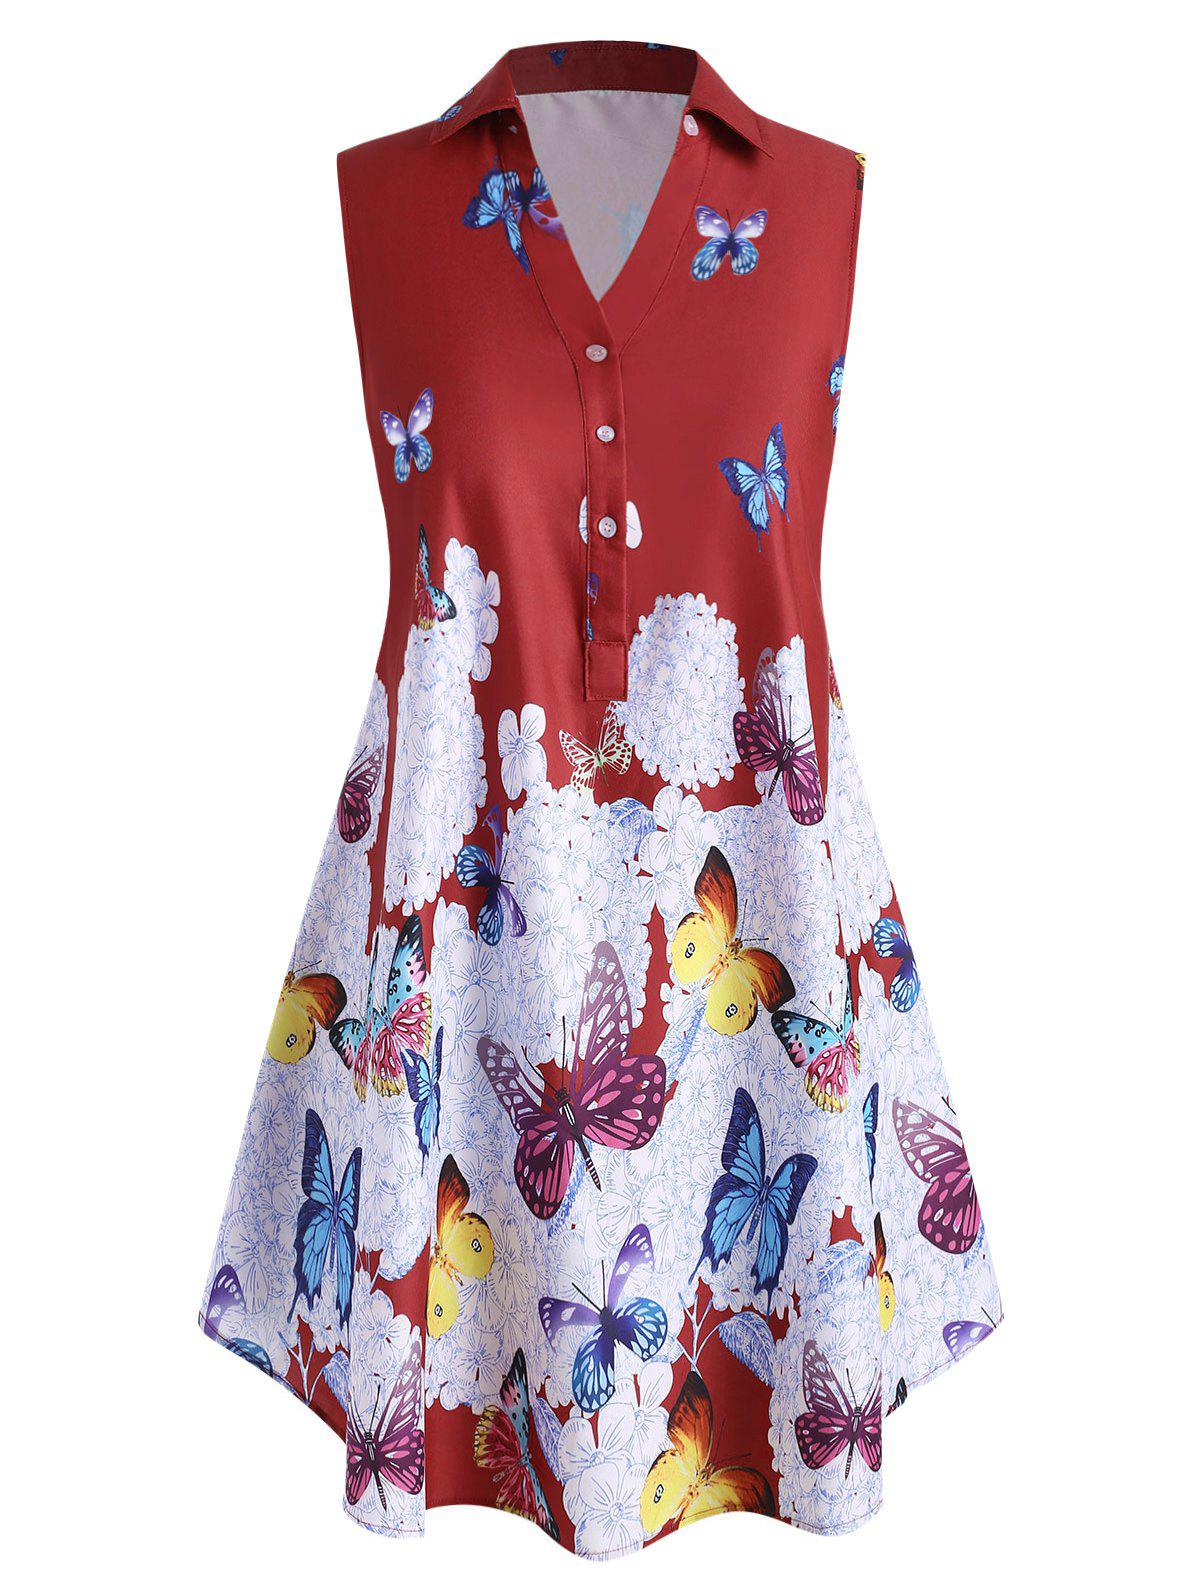 Affordable Plus Size Sleeveless Butterfly Print Graphic Blouse